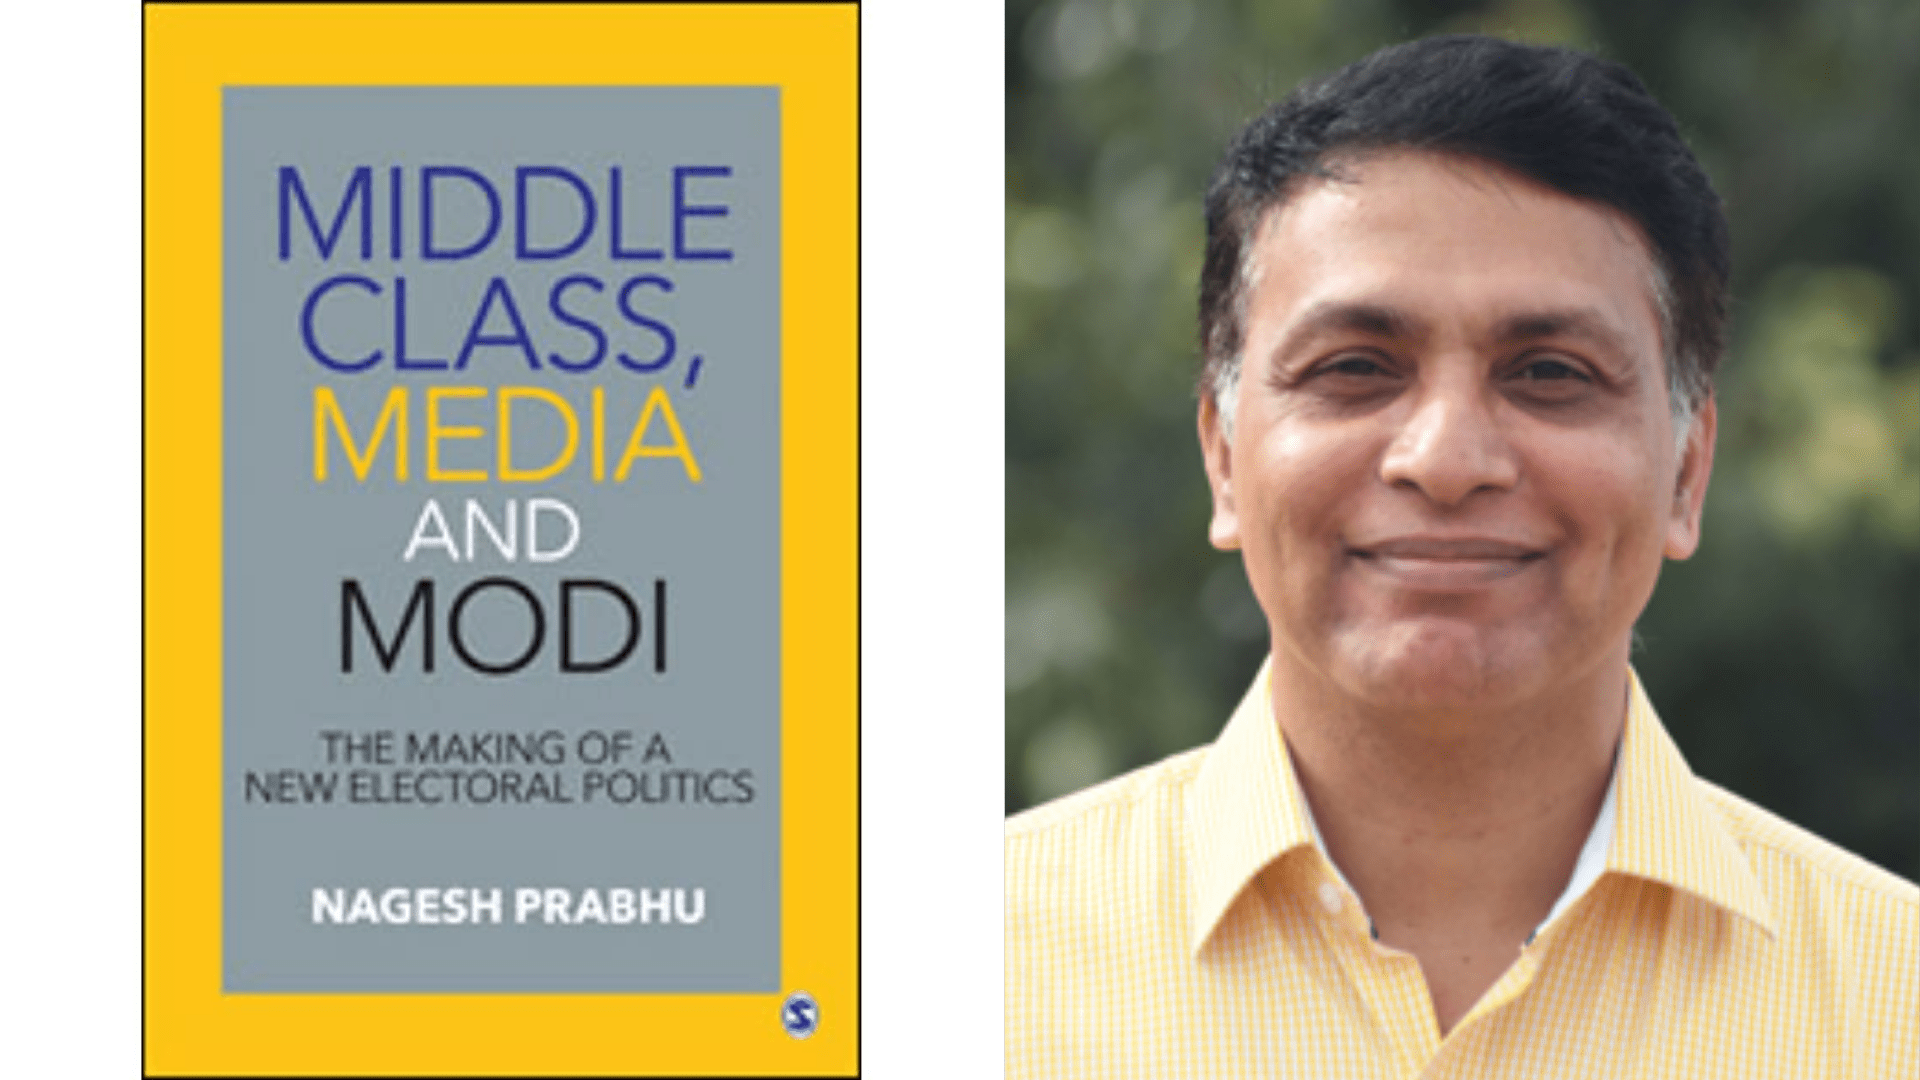 Book Review: Middle Class, Media And Modi By Nagesh Prabhu